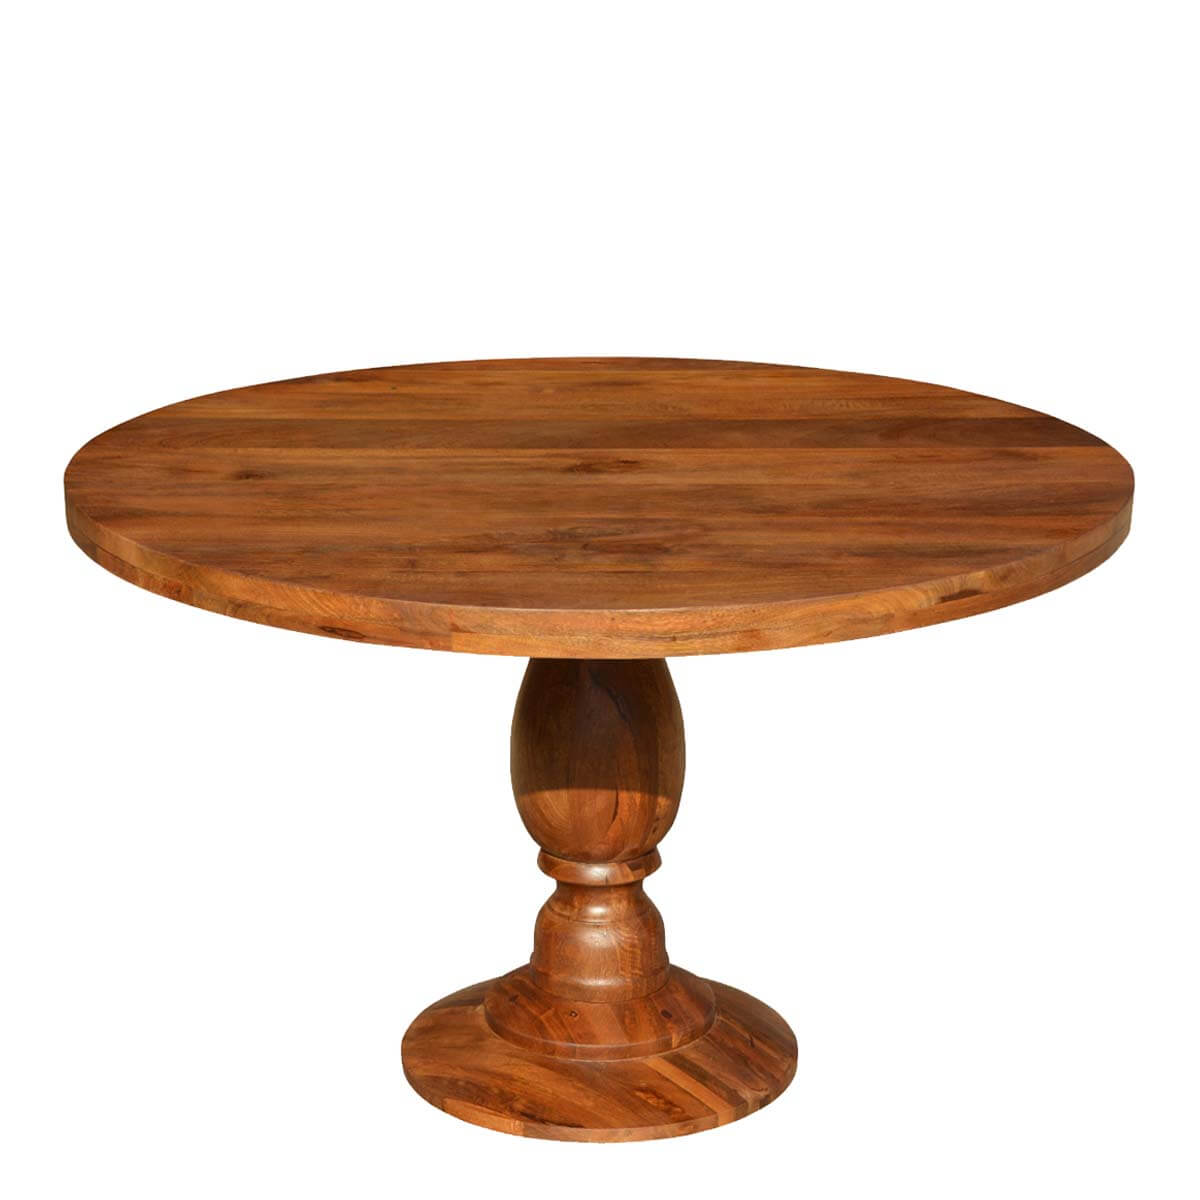 Rustic colonial american solid wood 48 round pedestal for Pedestal table